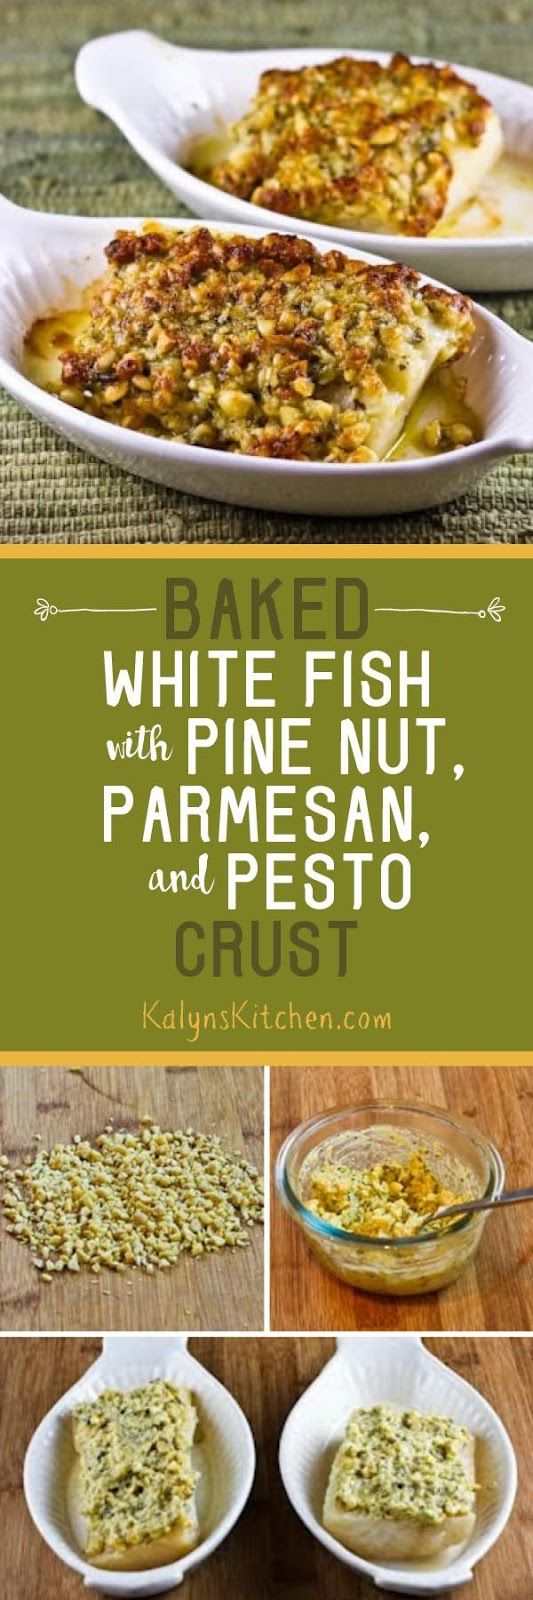 Baked White Fish with Pine Nut, Parmesan, and Basil Pesto Crust found on KalynsKitchen.com